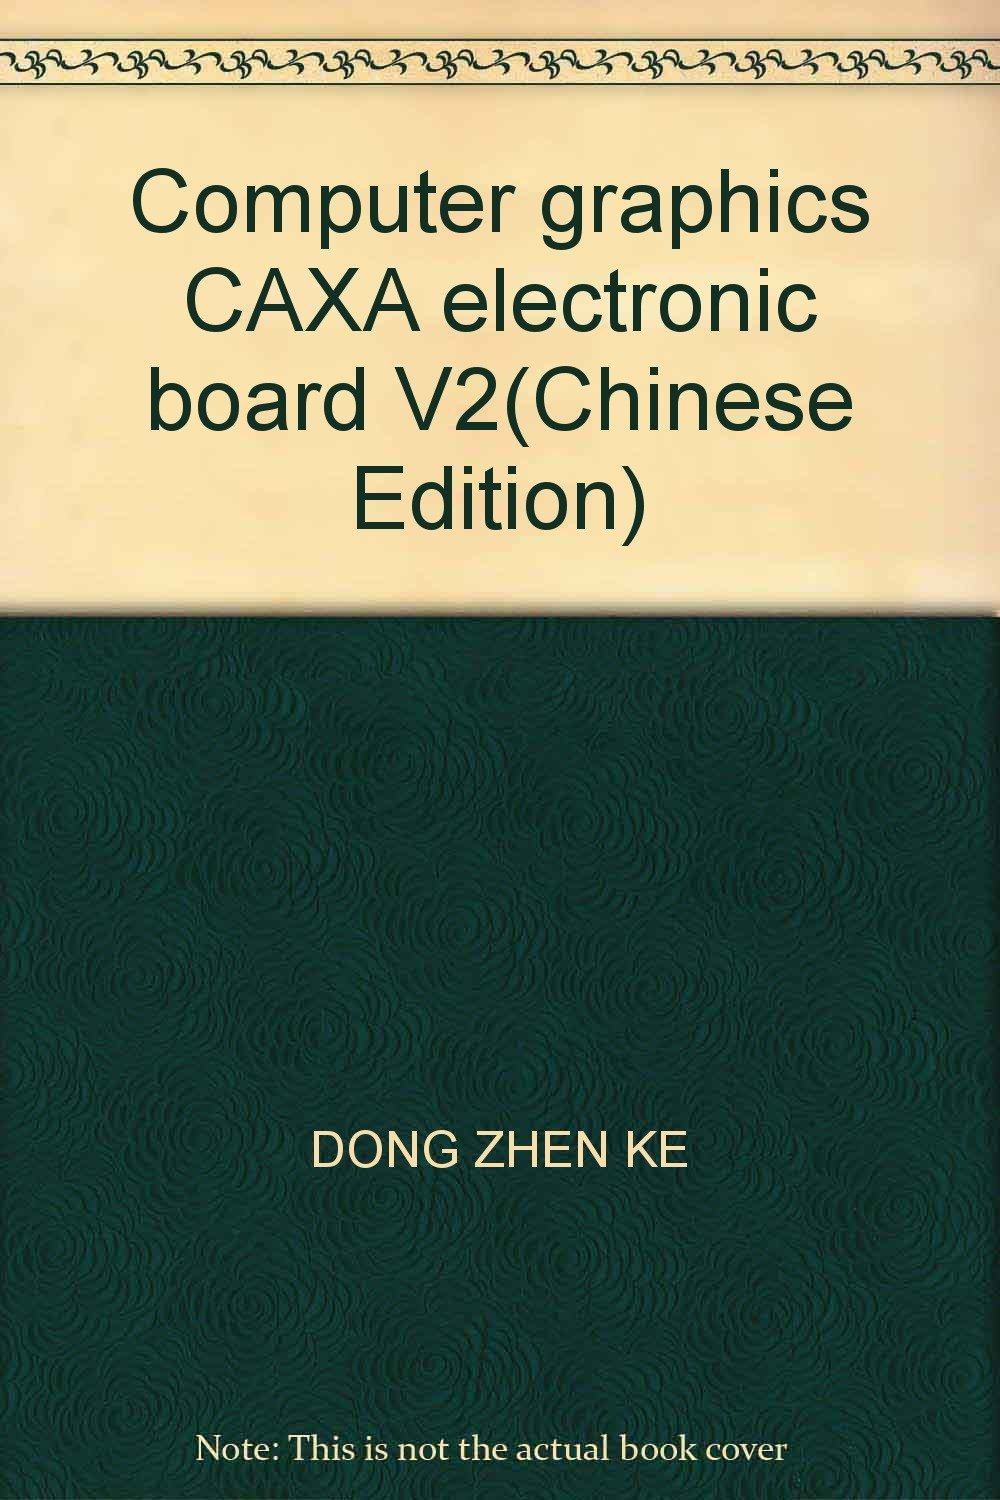 Computer graphics CAXA electronic board V2(Chinese Edition) PDF